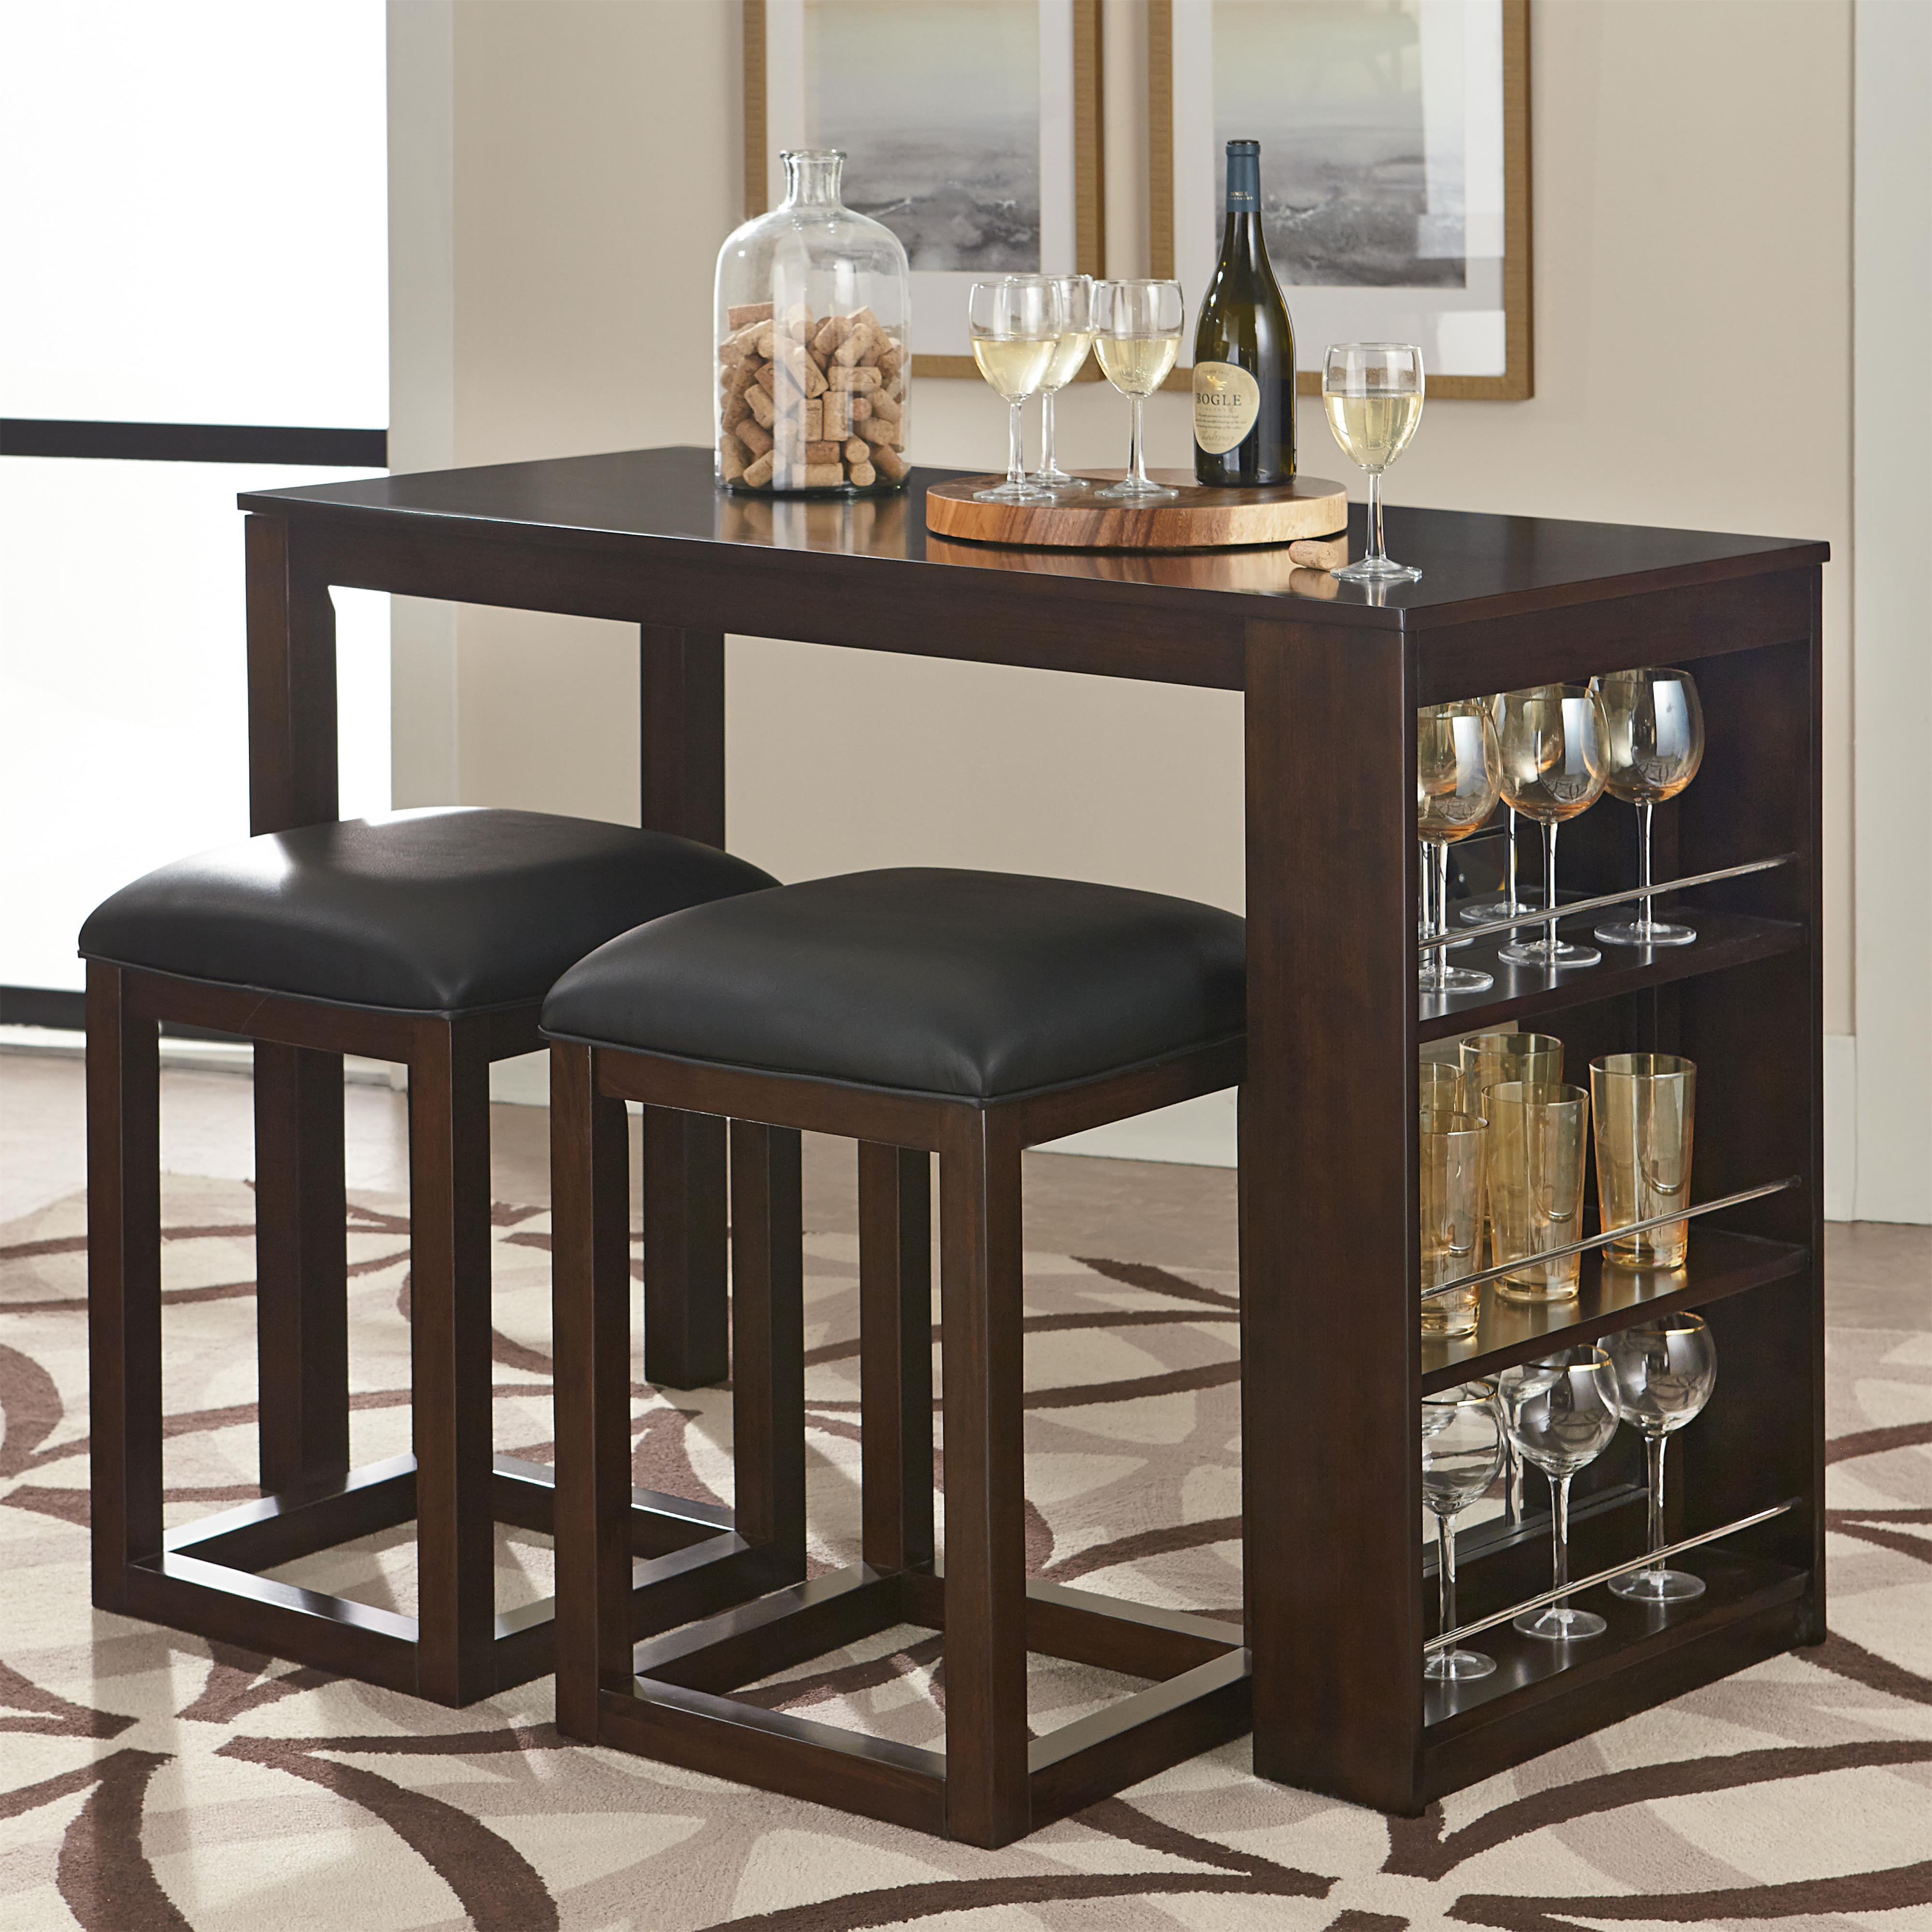 3 Piece Pub Table and Stool Set with Storage by Standard Furniture